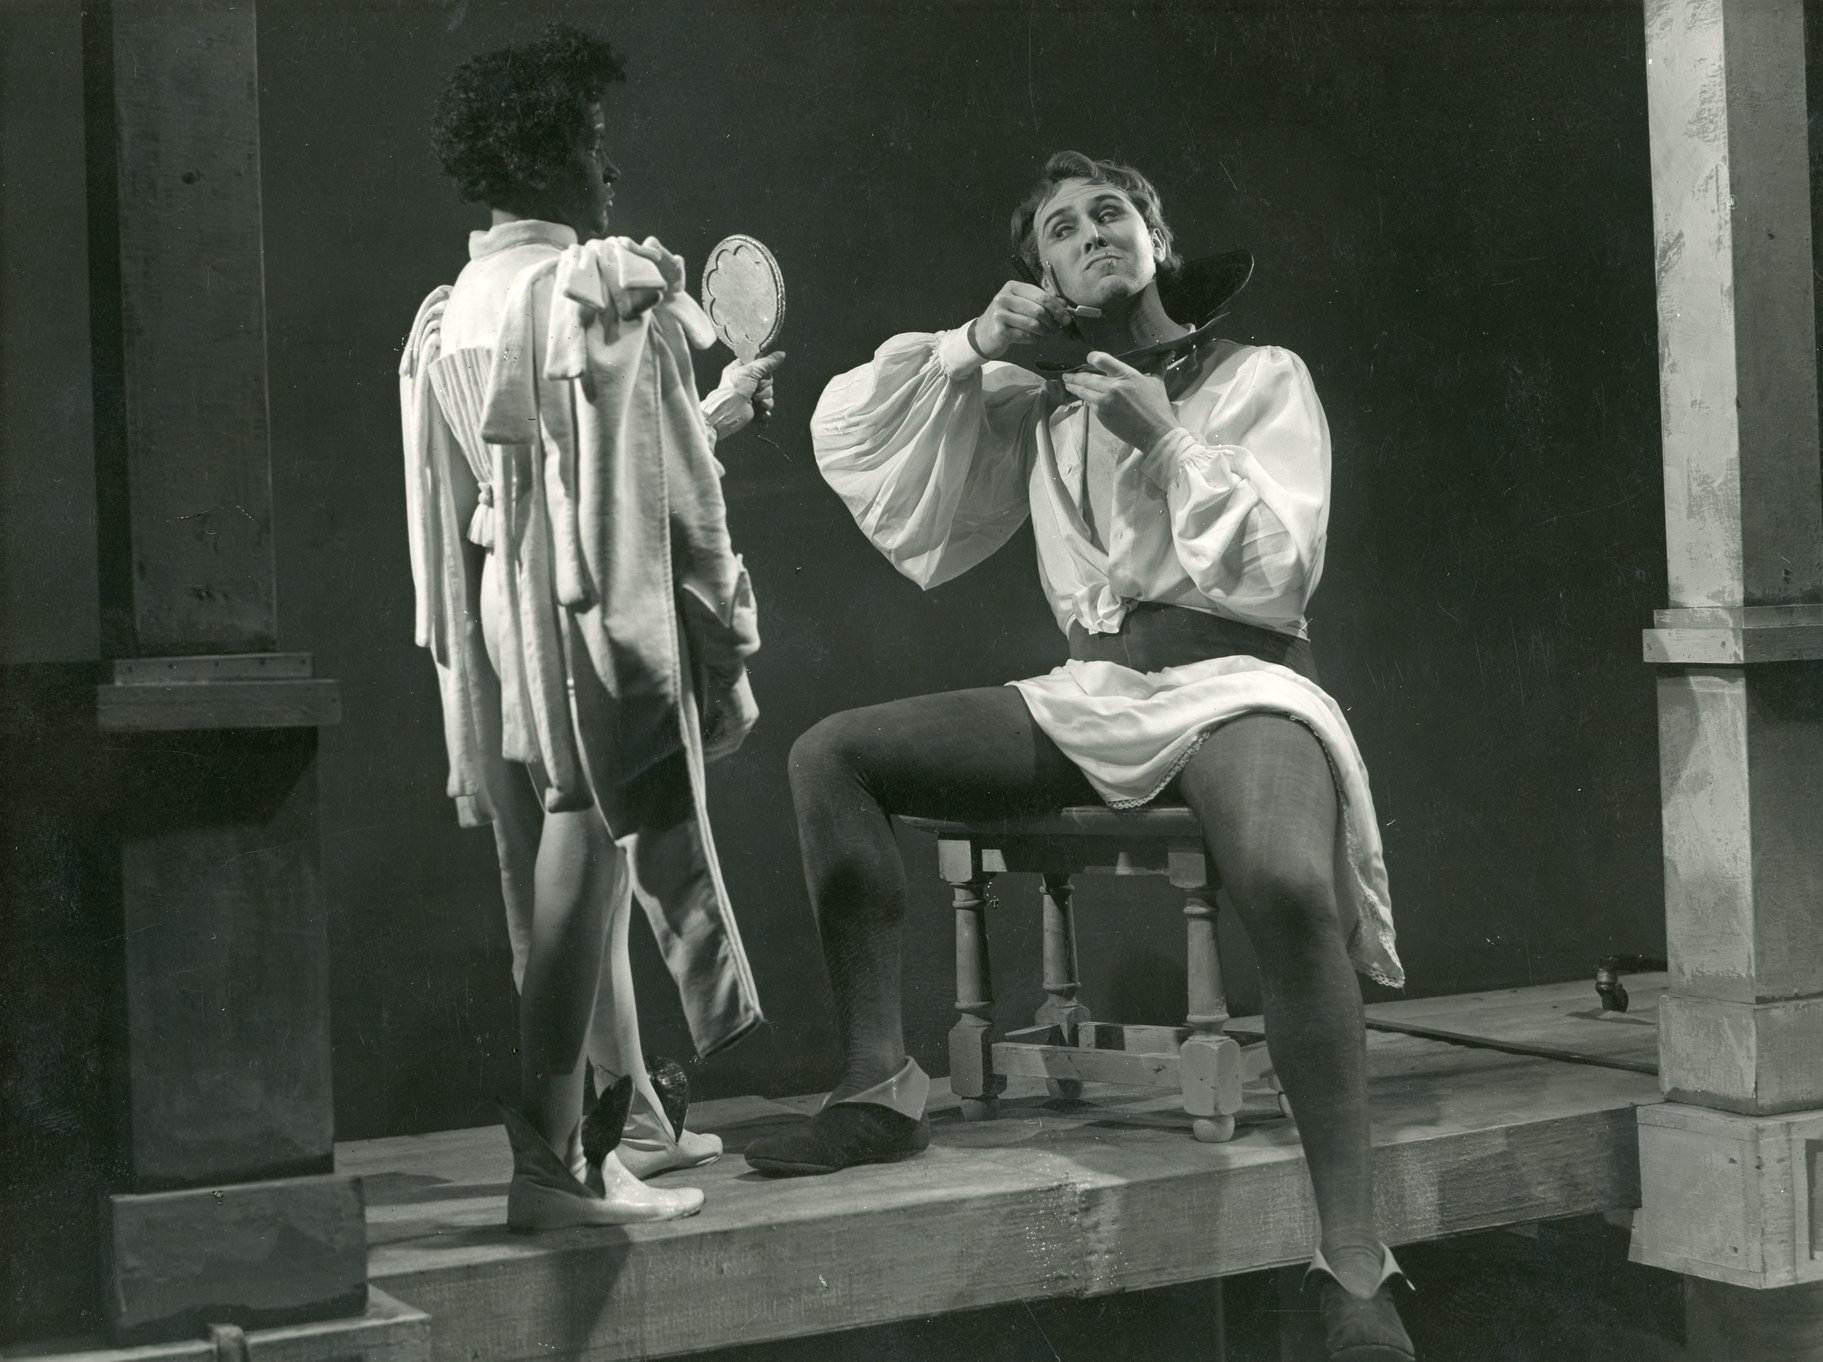 Benedick shaves as a servant holds up a mirror.